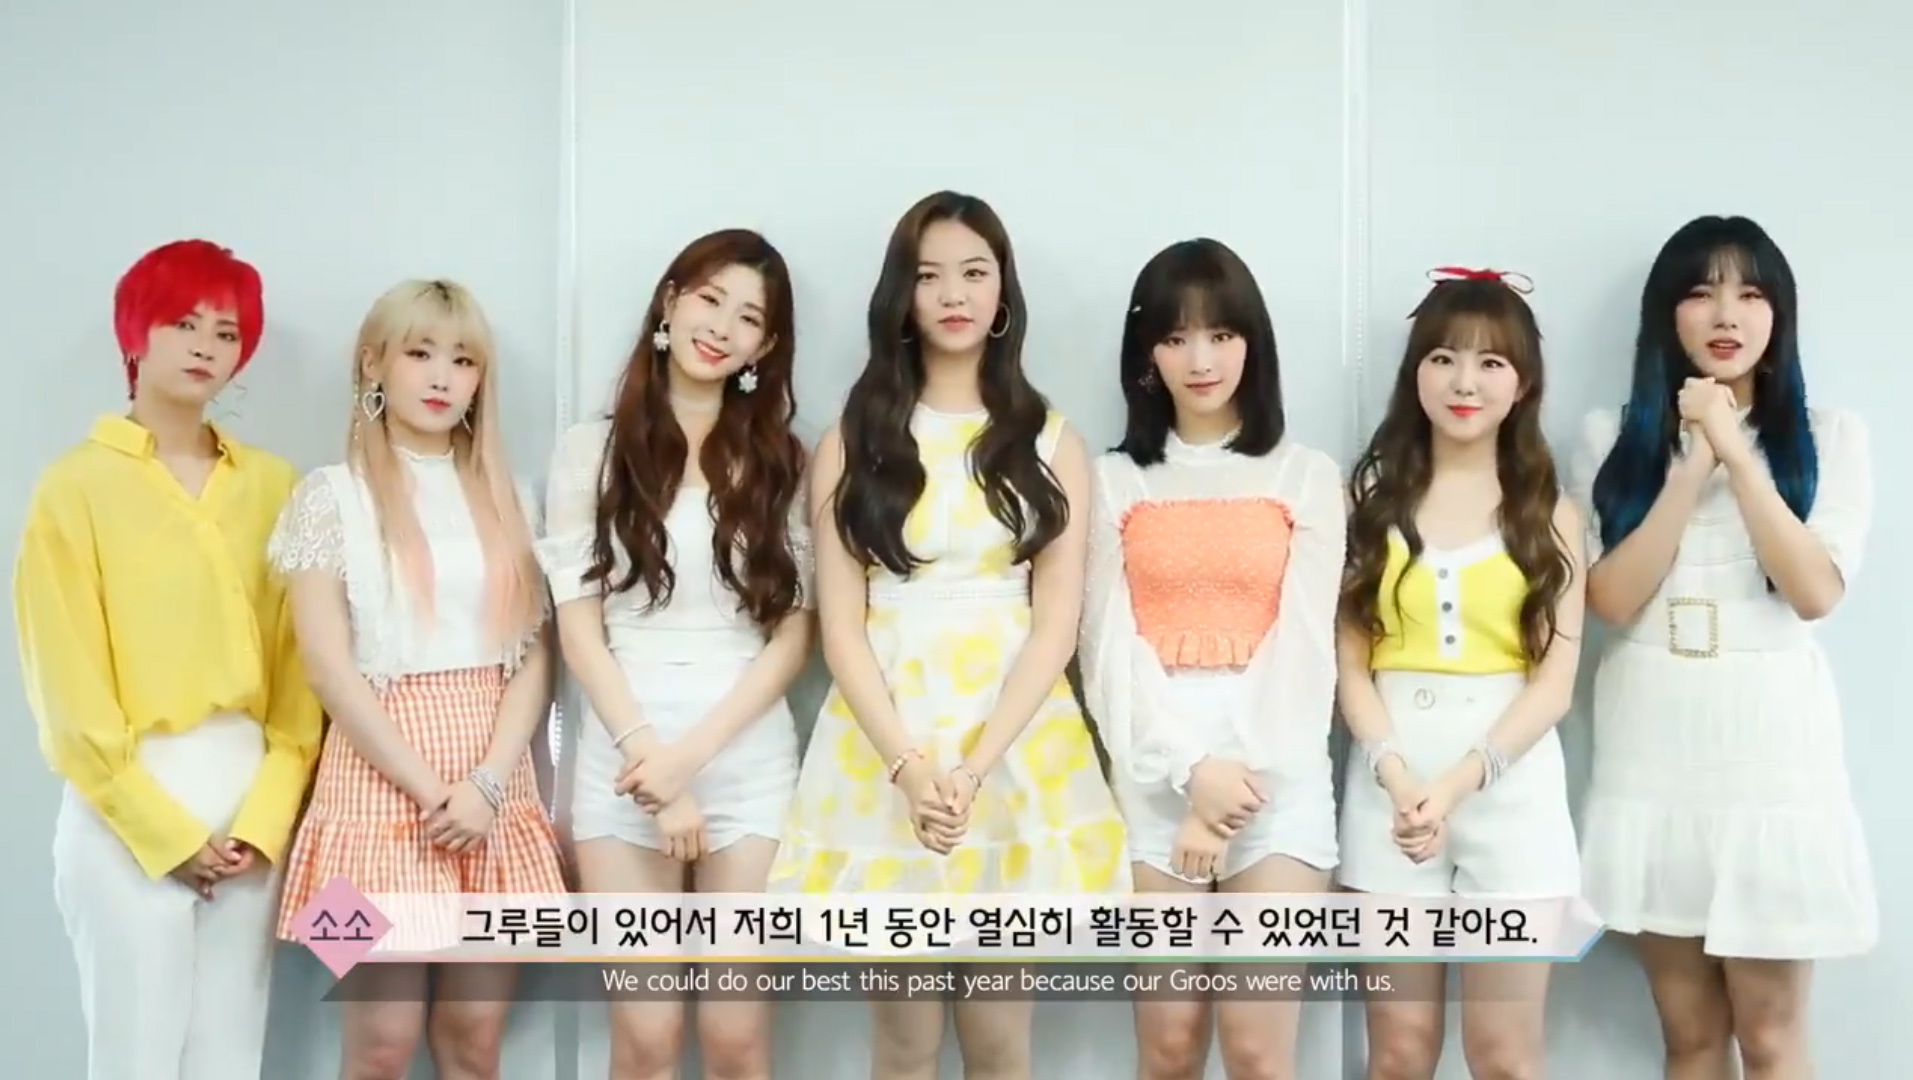 GWSN, who celebrated their 1 year debut anniversary on September 5th (Photo=screen capture of GWSN's official social media video)